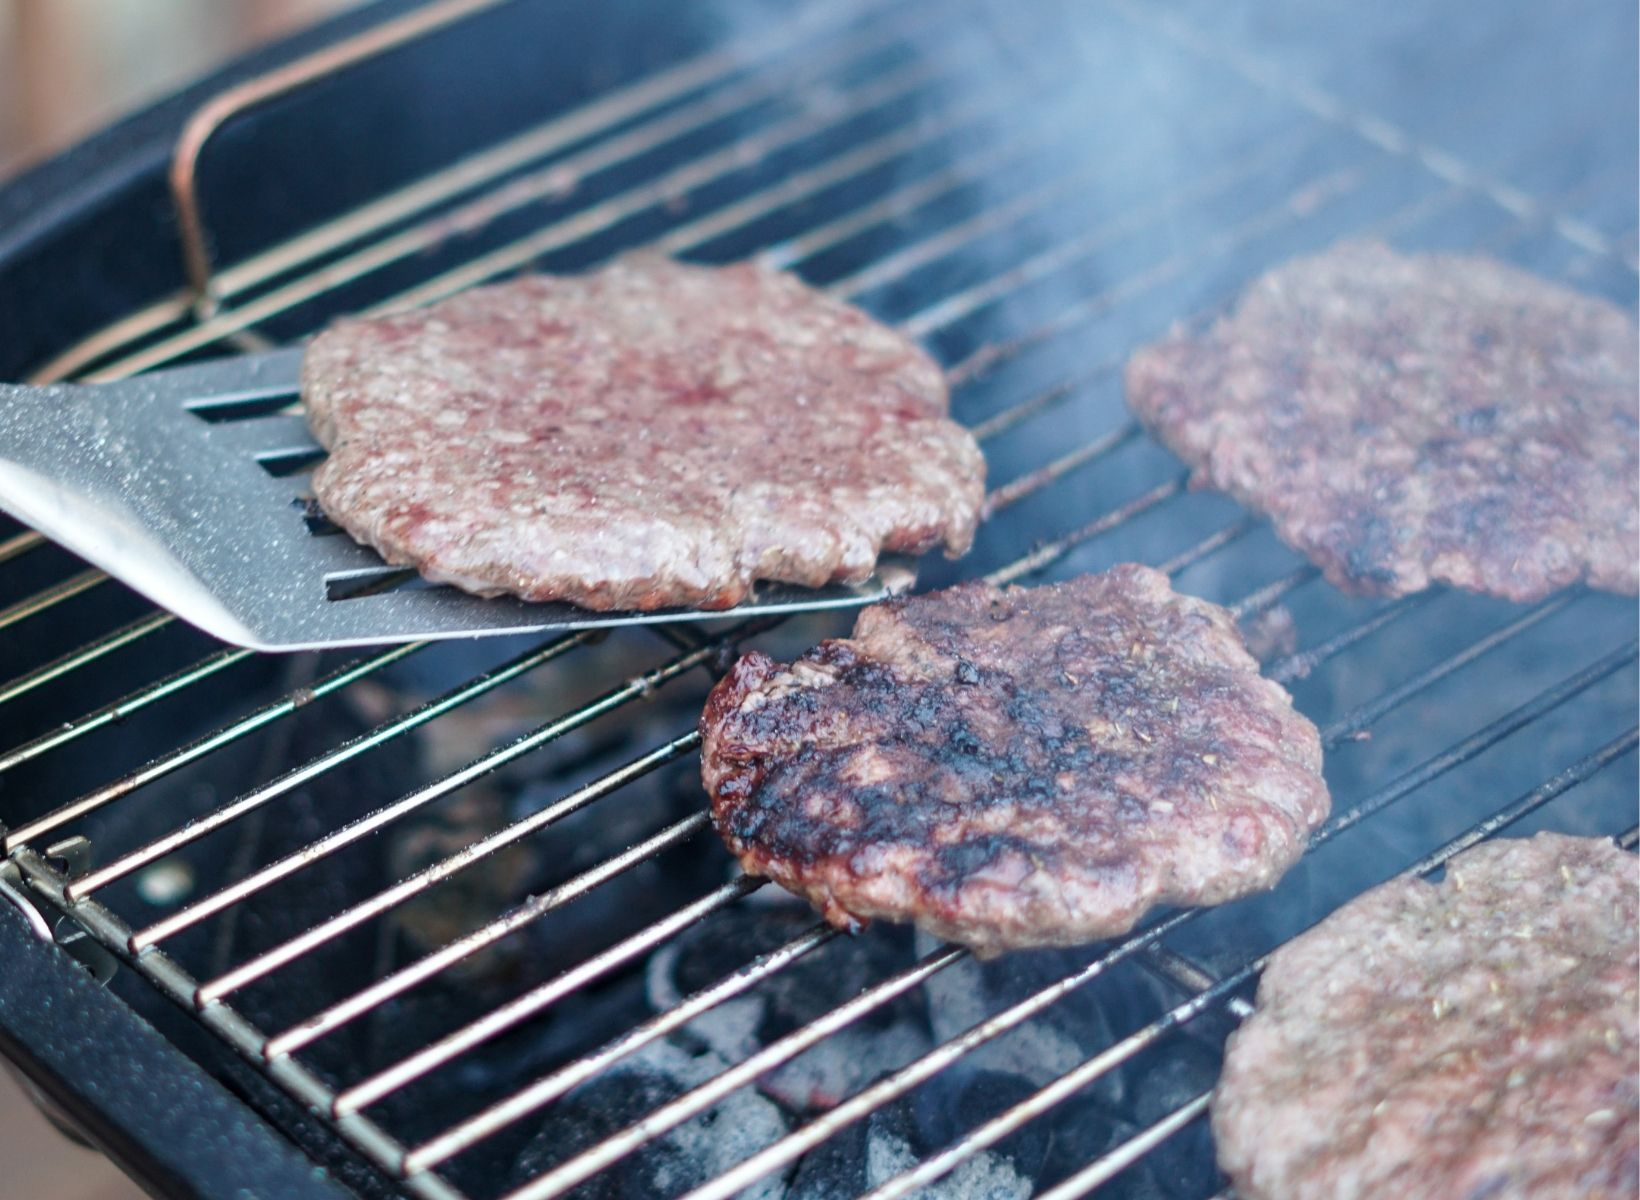 Close up shot of a burger on a spatula. Other burger patties are cooking on the grill grates.